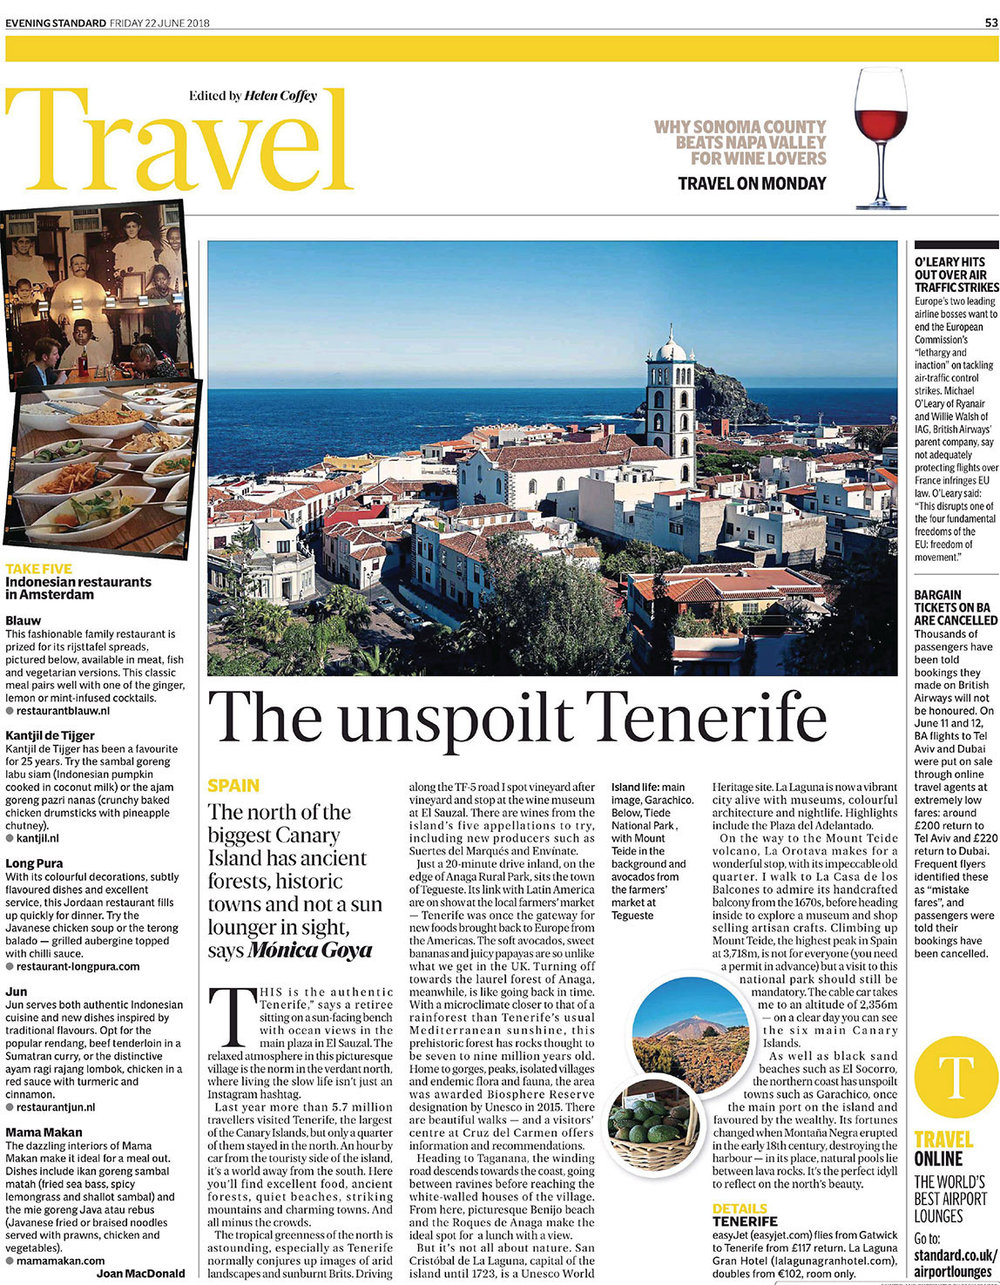 The Unspoilt Tenerife – London Evening Standard 22/06/2018 – Writing